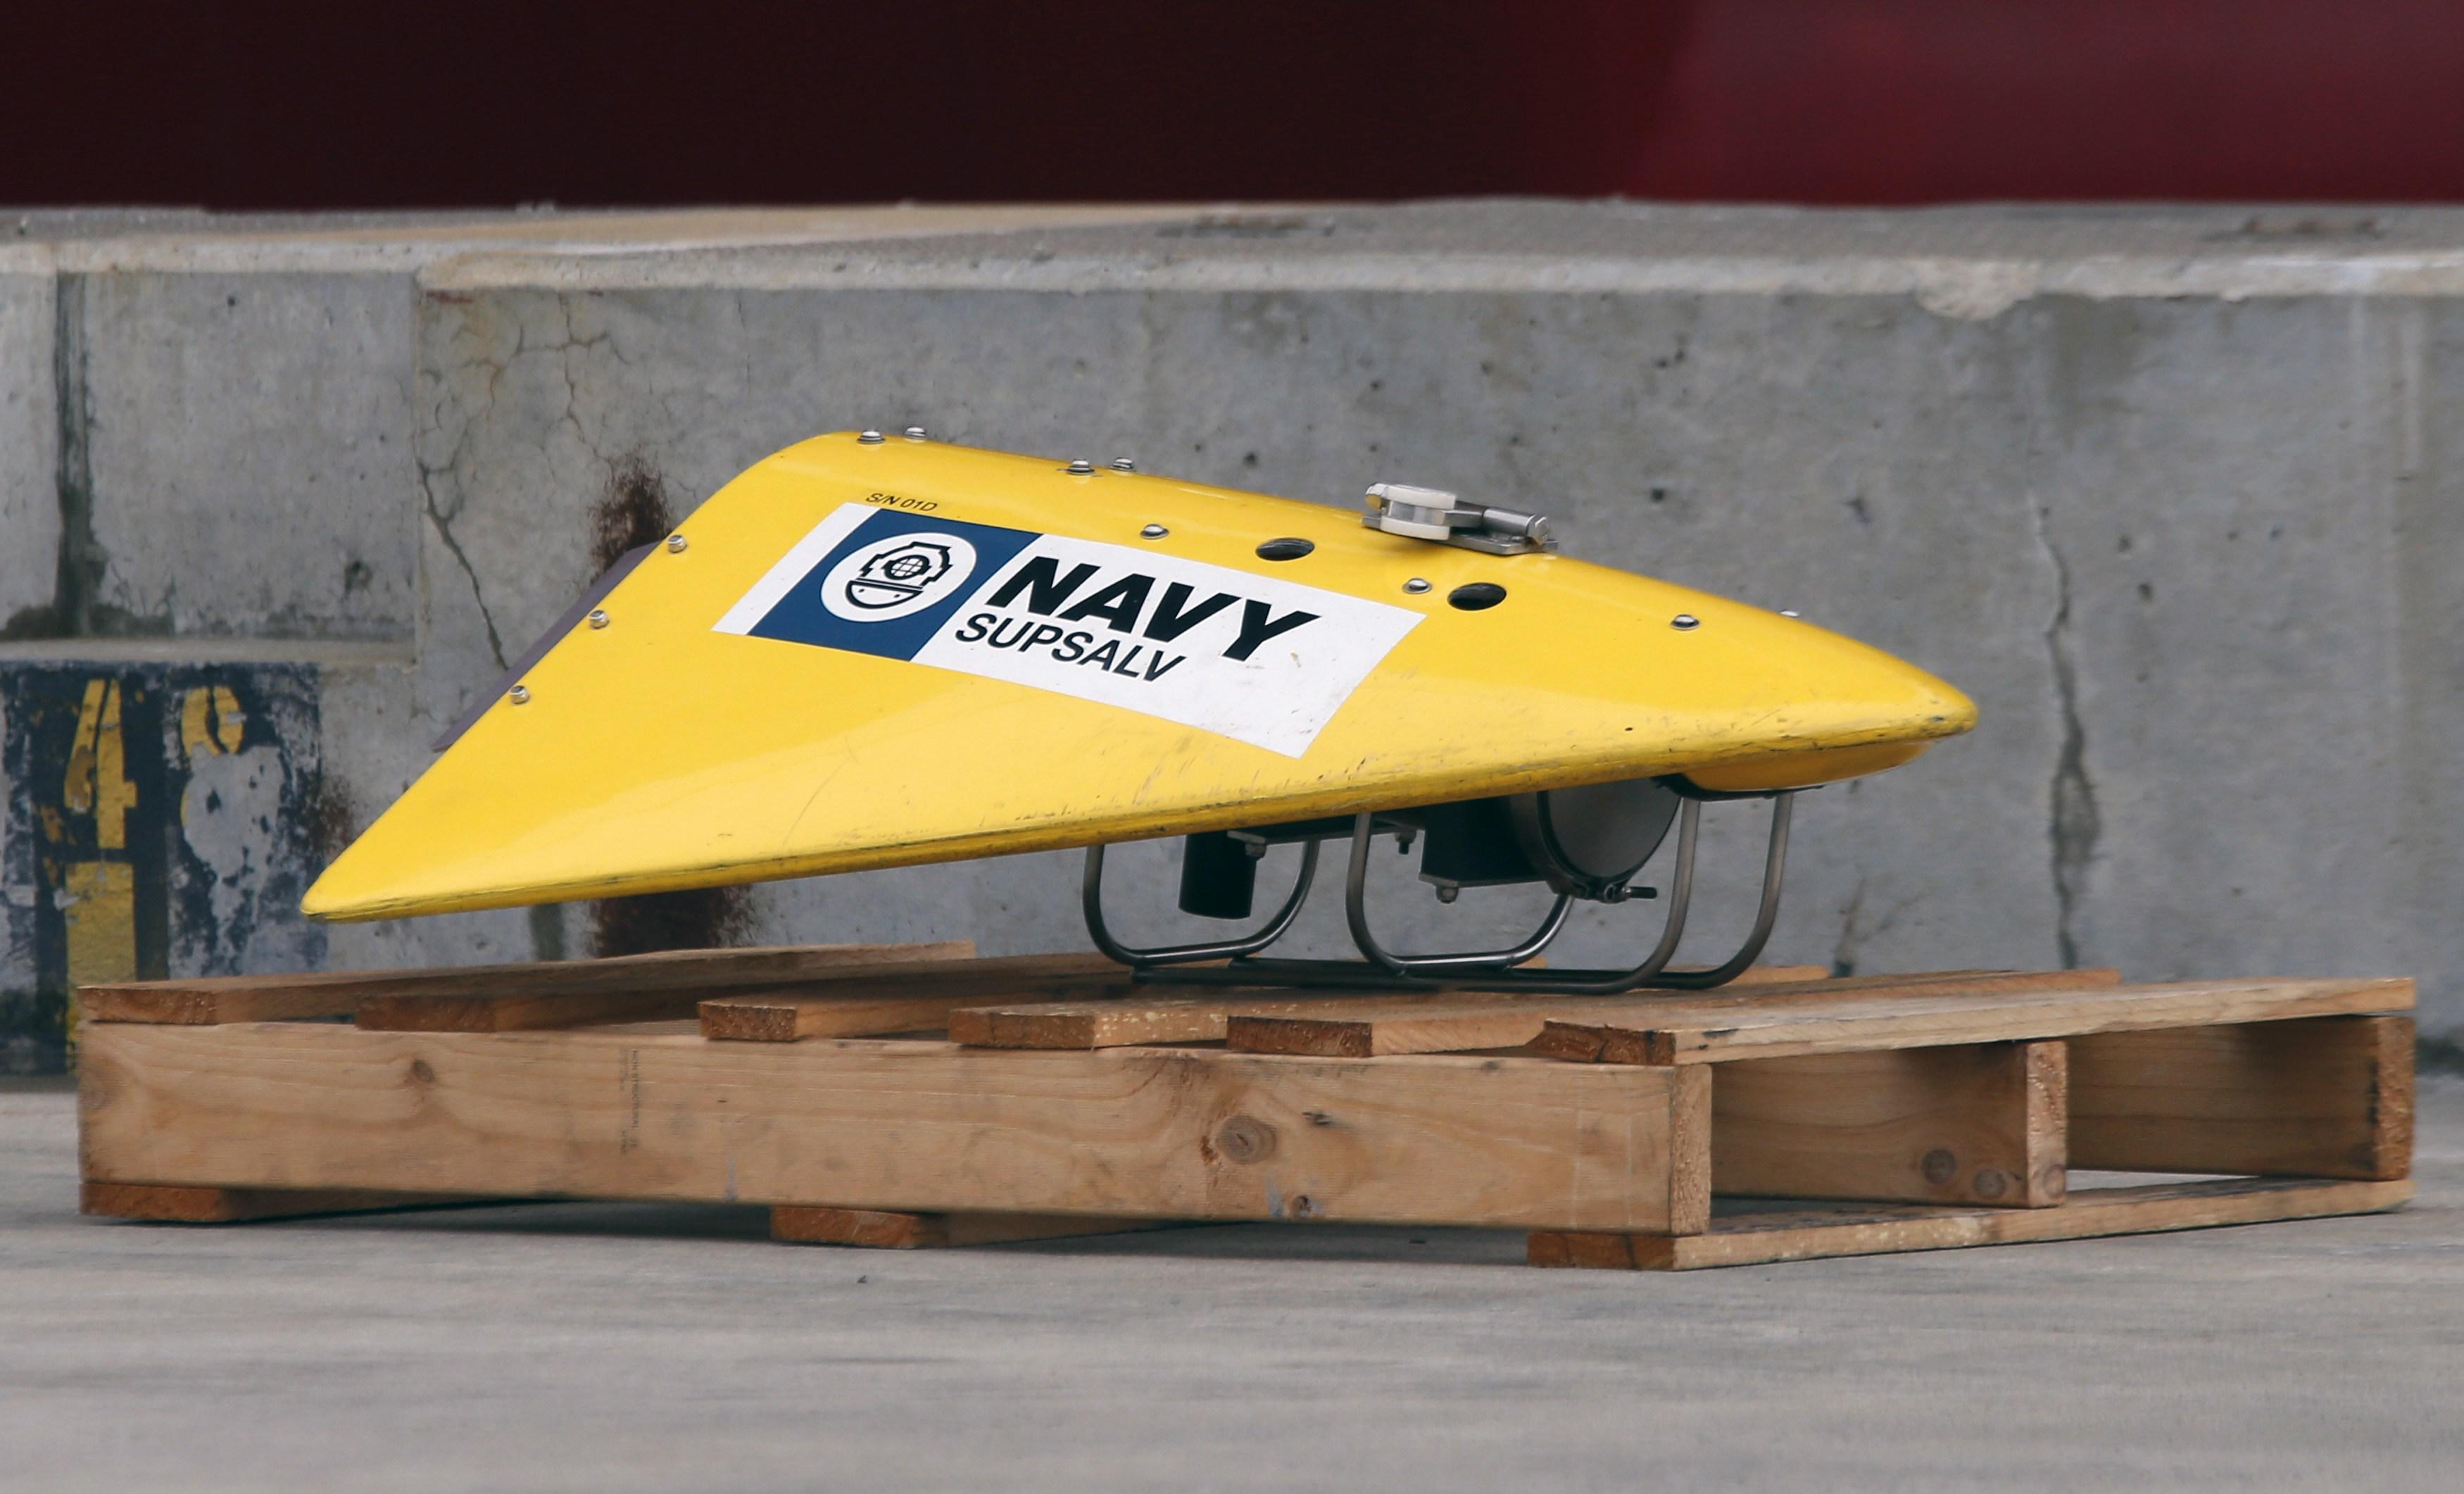 MH370 towed pinger locator March 30